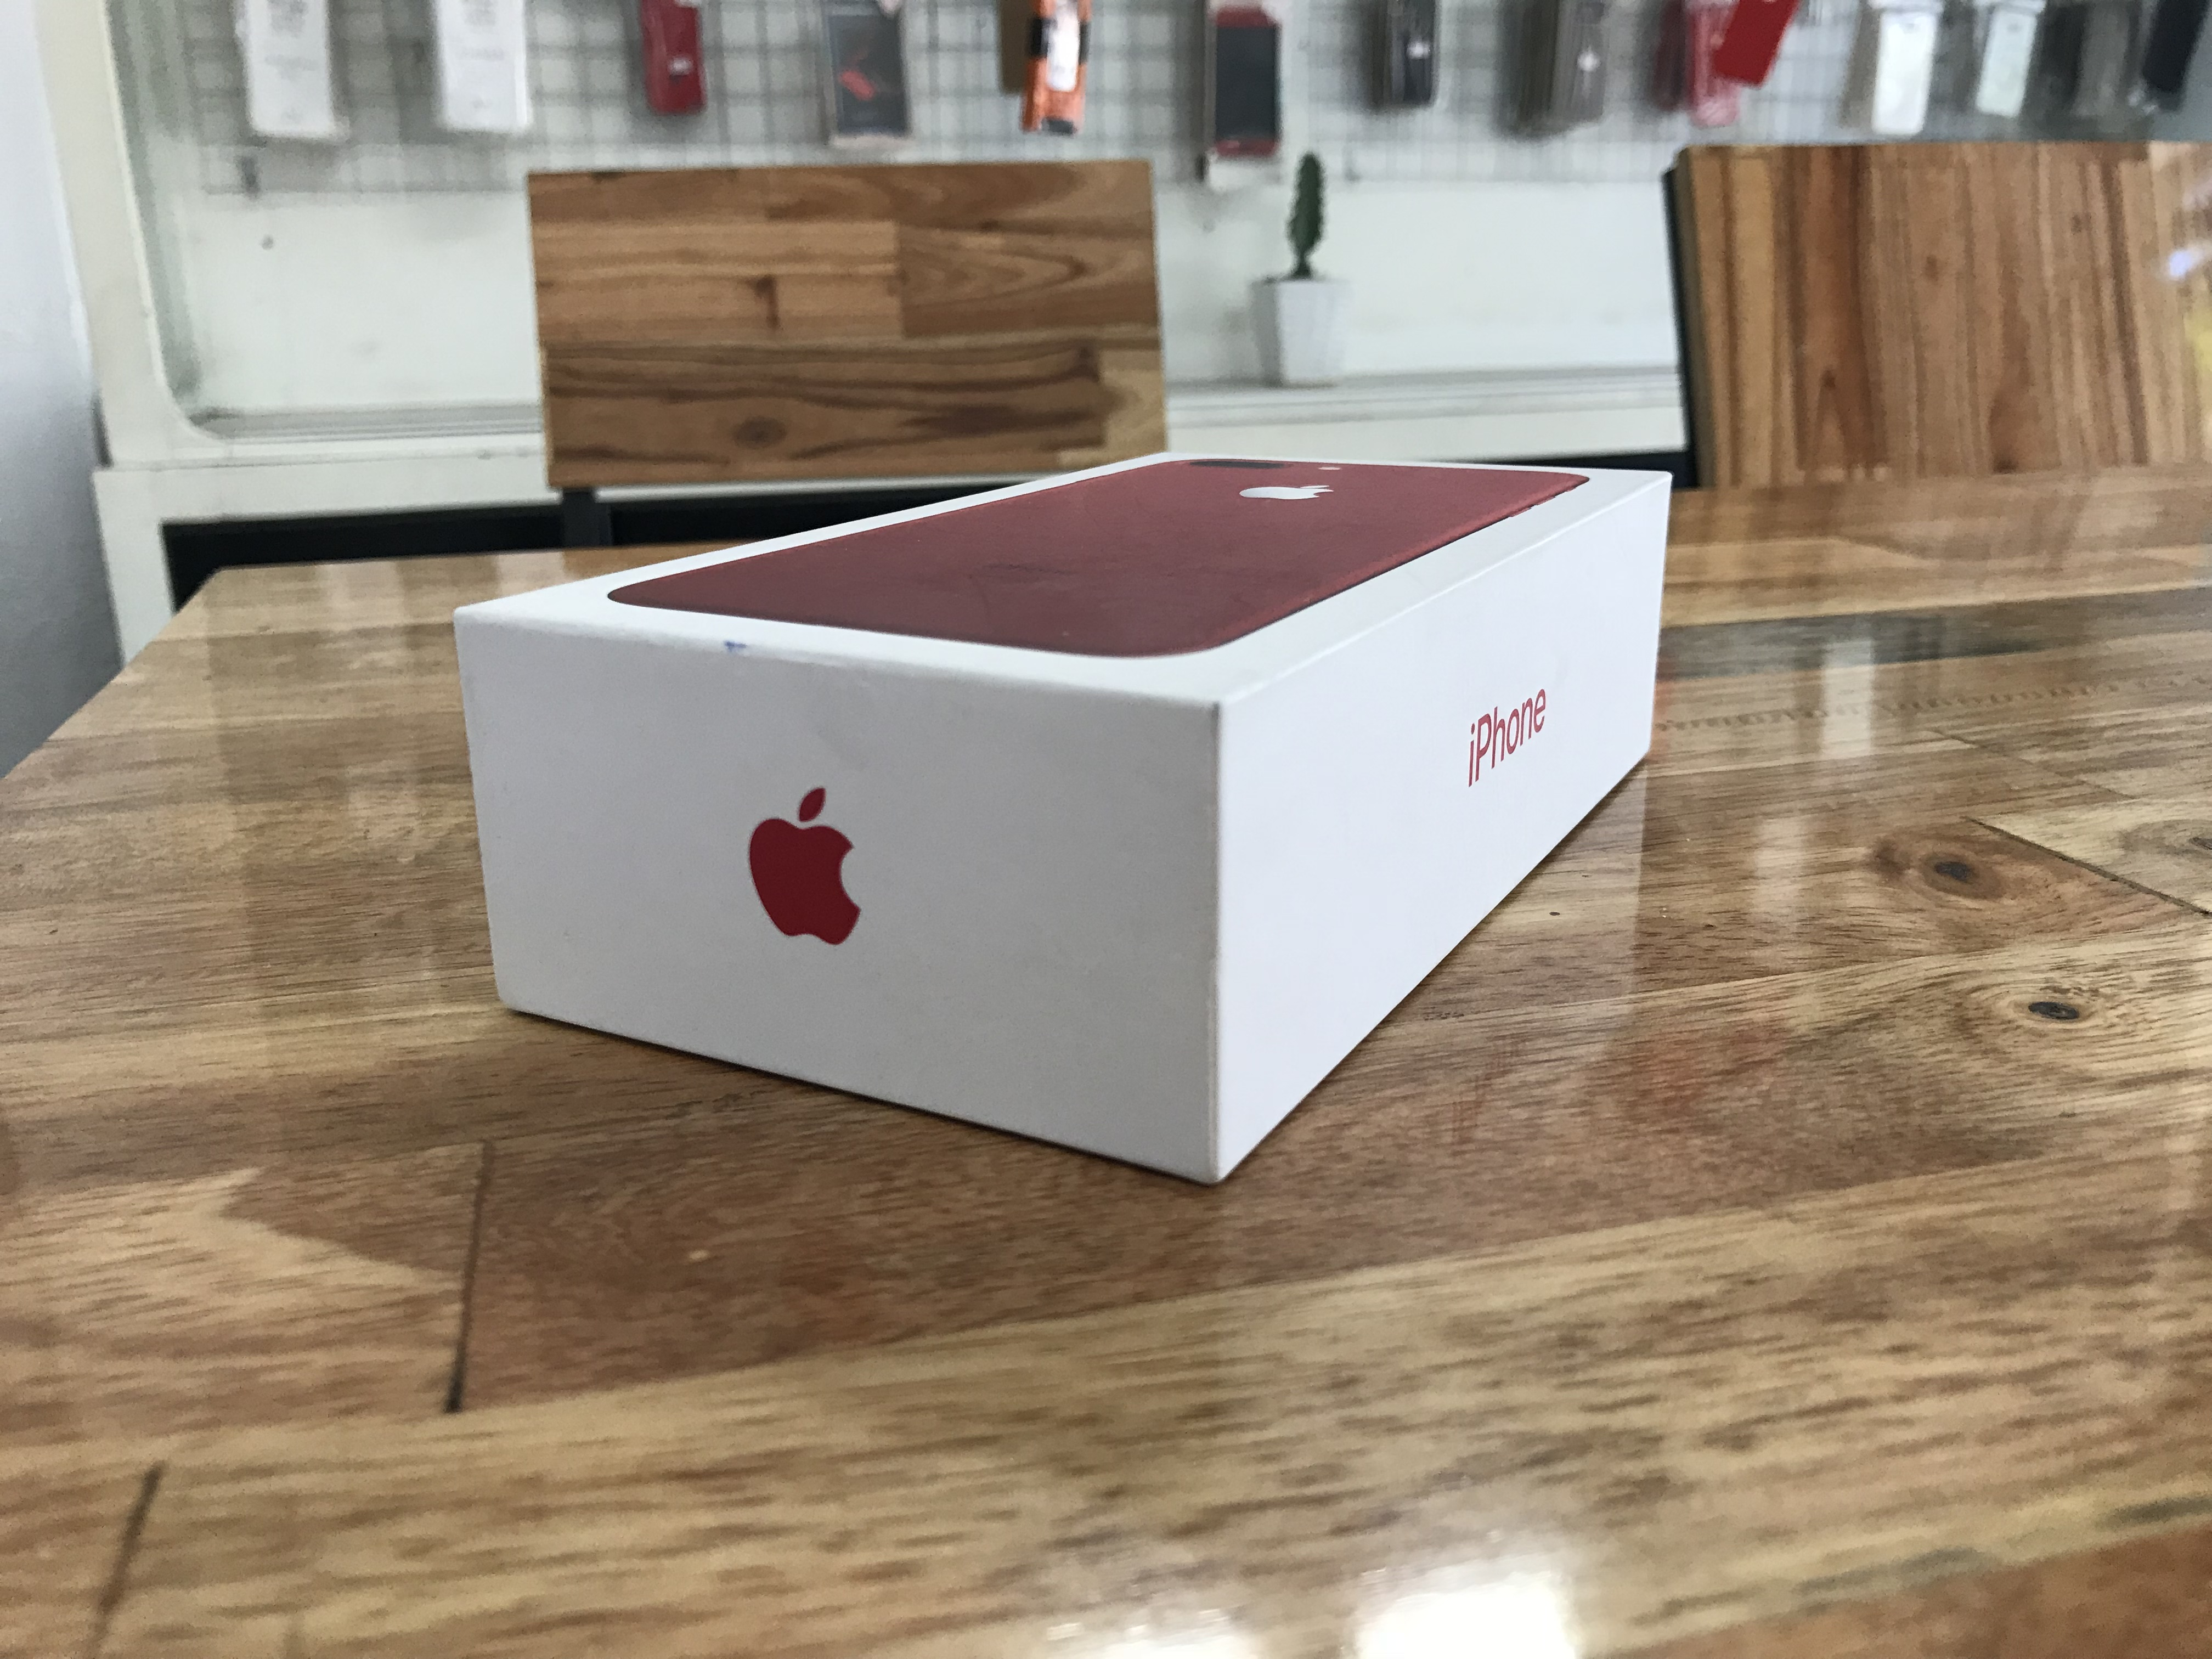 4 IPhone 7 plus 128gb Red vn/a tgdd hết Bh